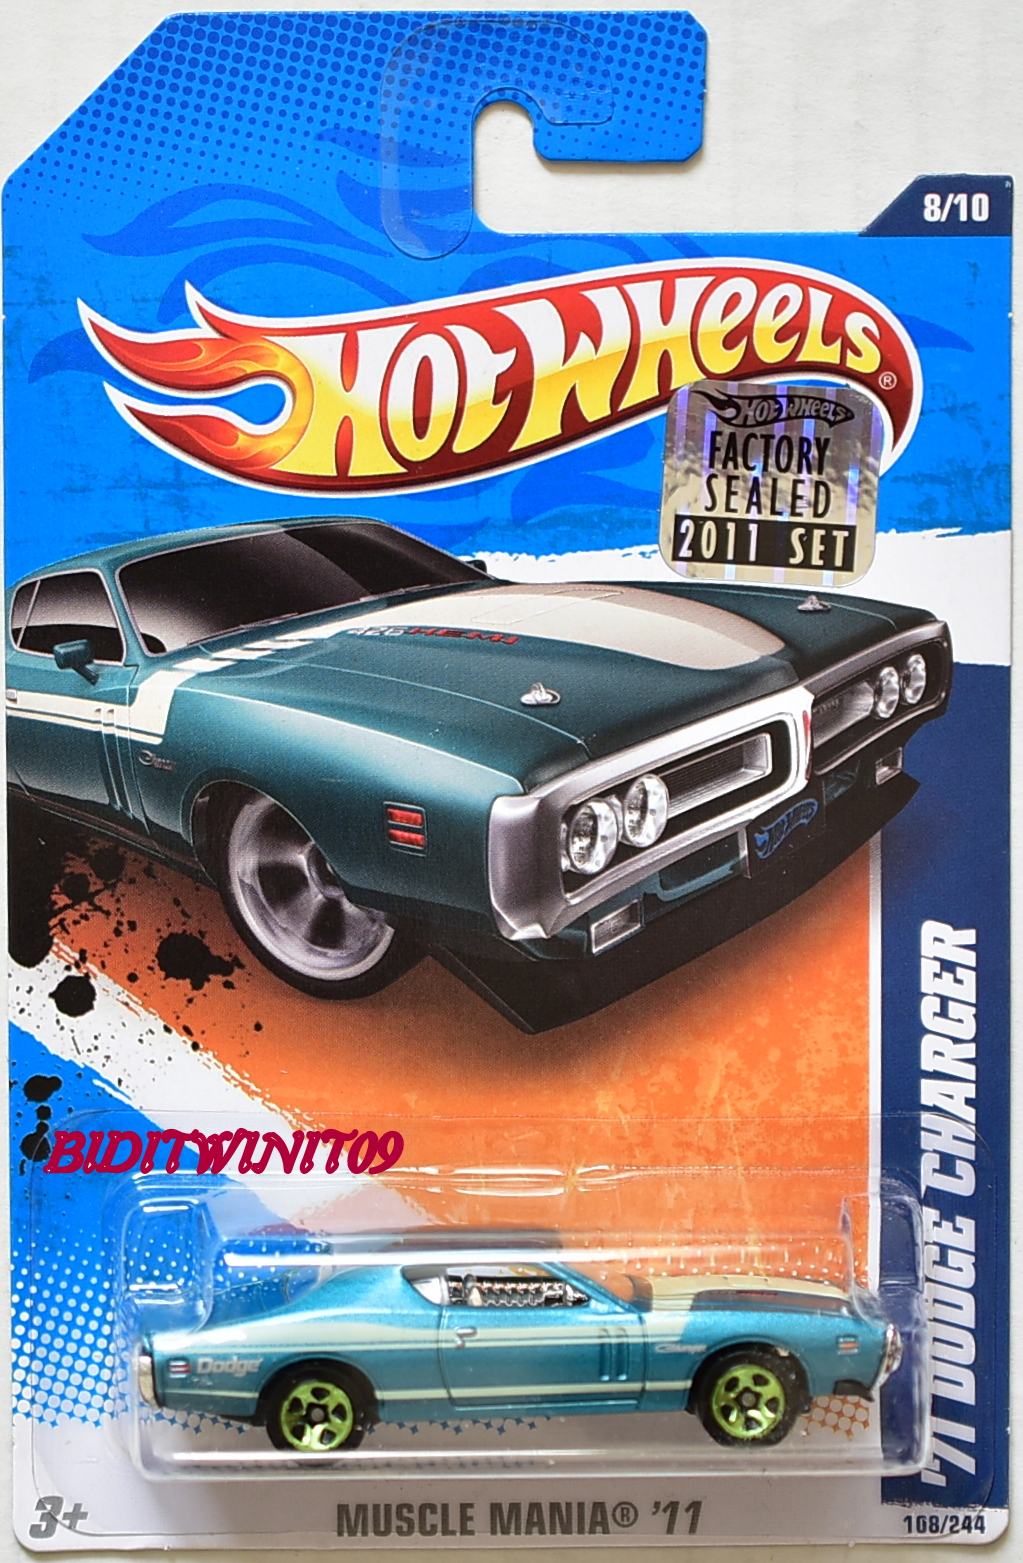 HOT WHEELS 2011 MUSCLE MANIA '71 DODGE CHARGER #8/10 TEAL FACTORY SEALED